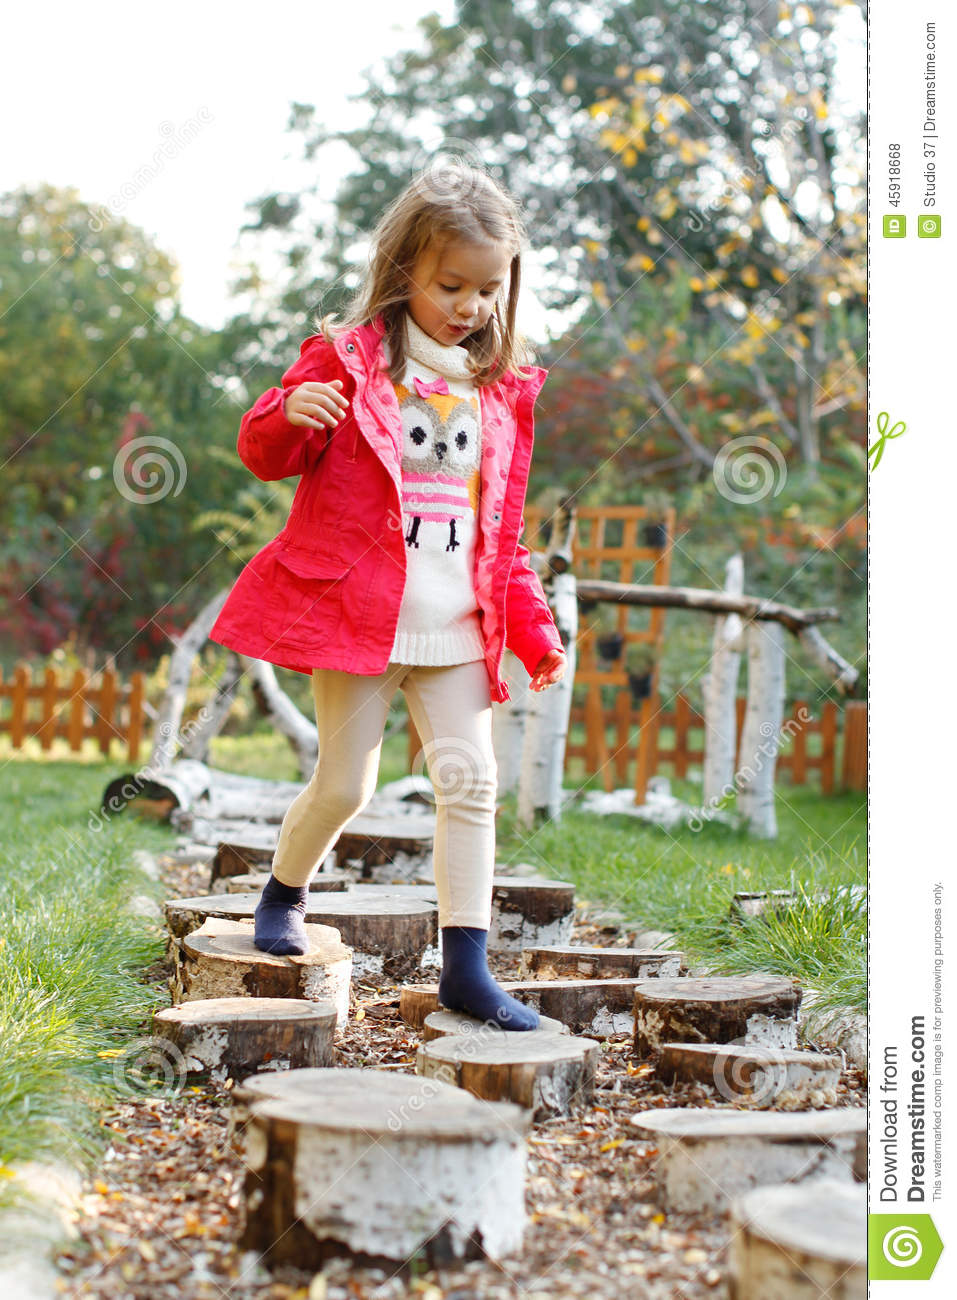 Over The Garden Walk: 4 Year Old Girl Walking Over Pebbles Stock Photo